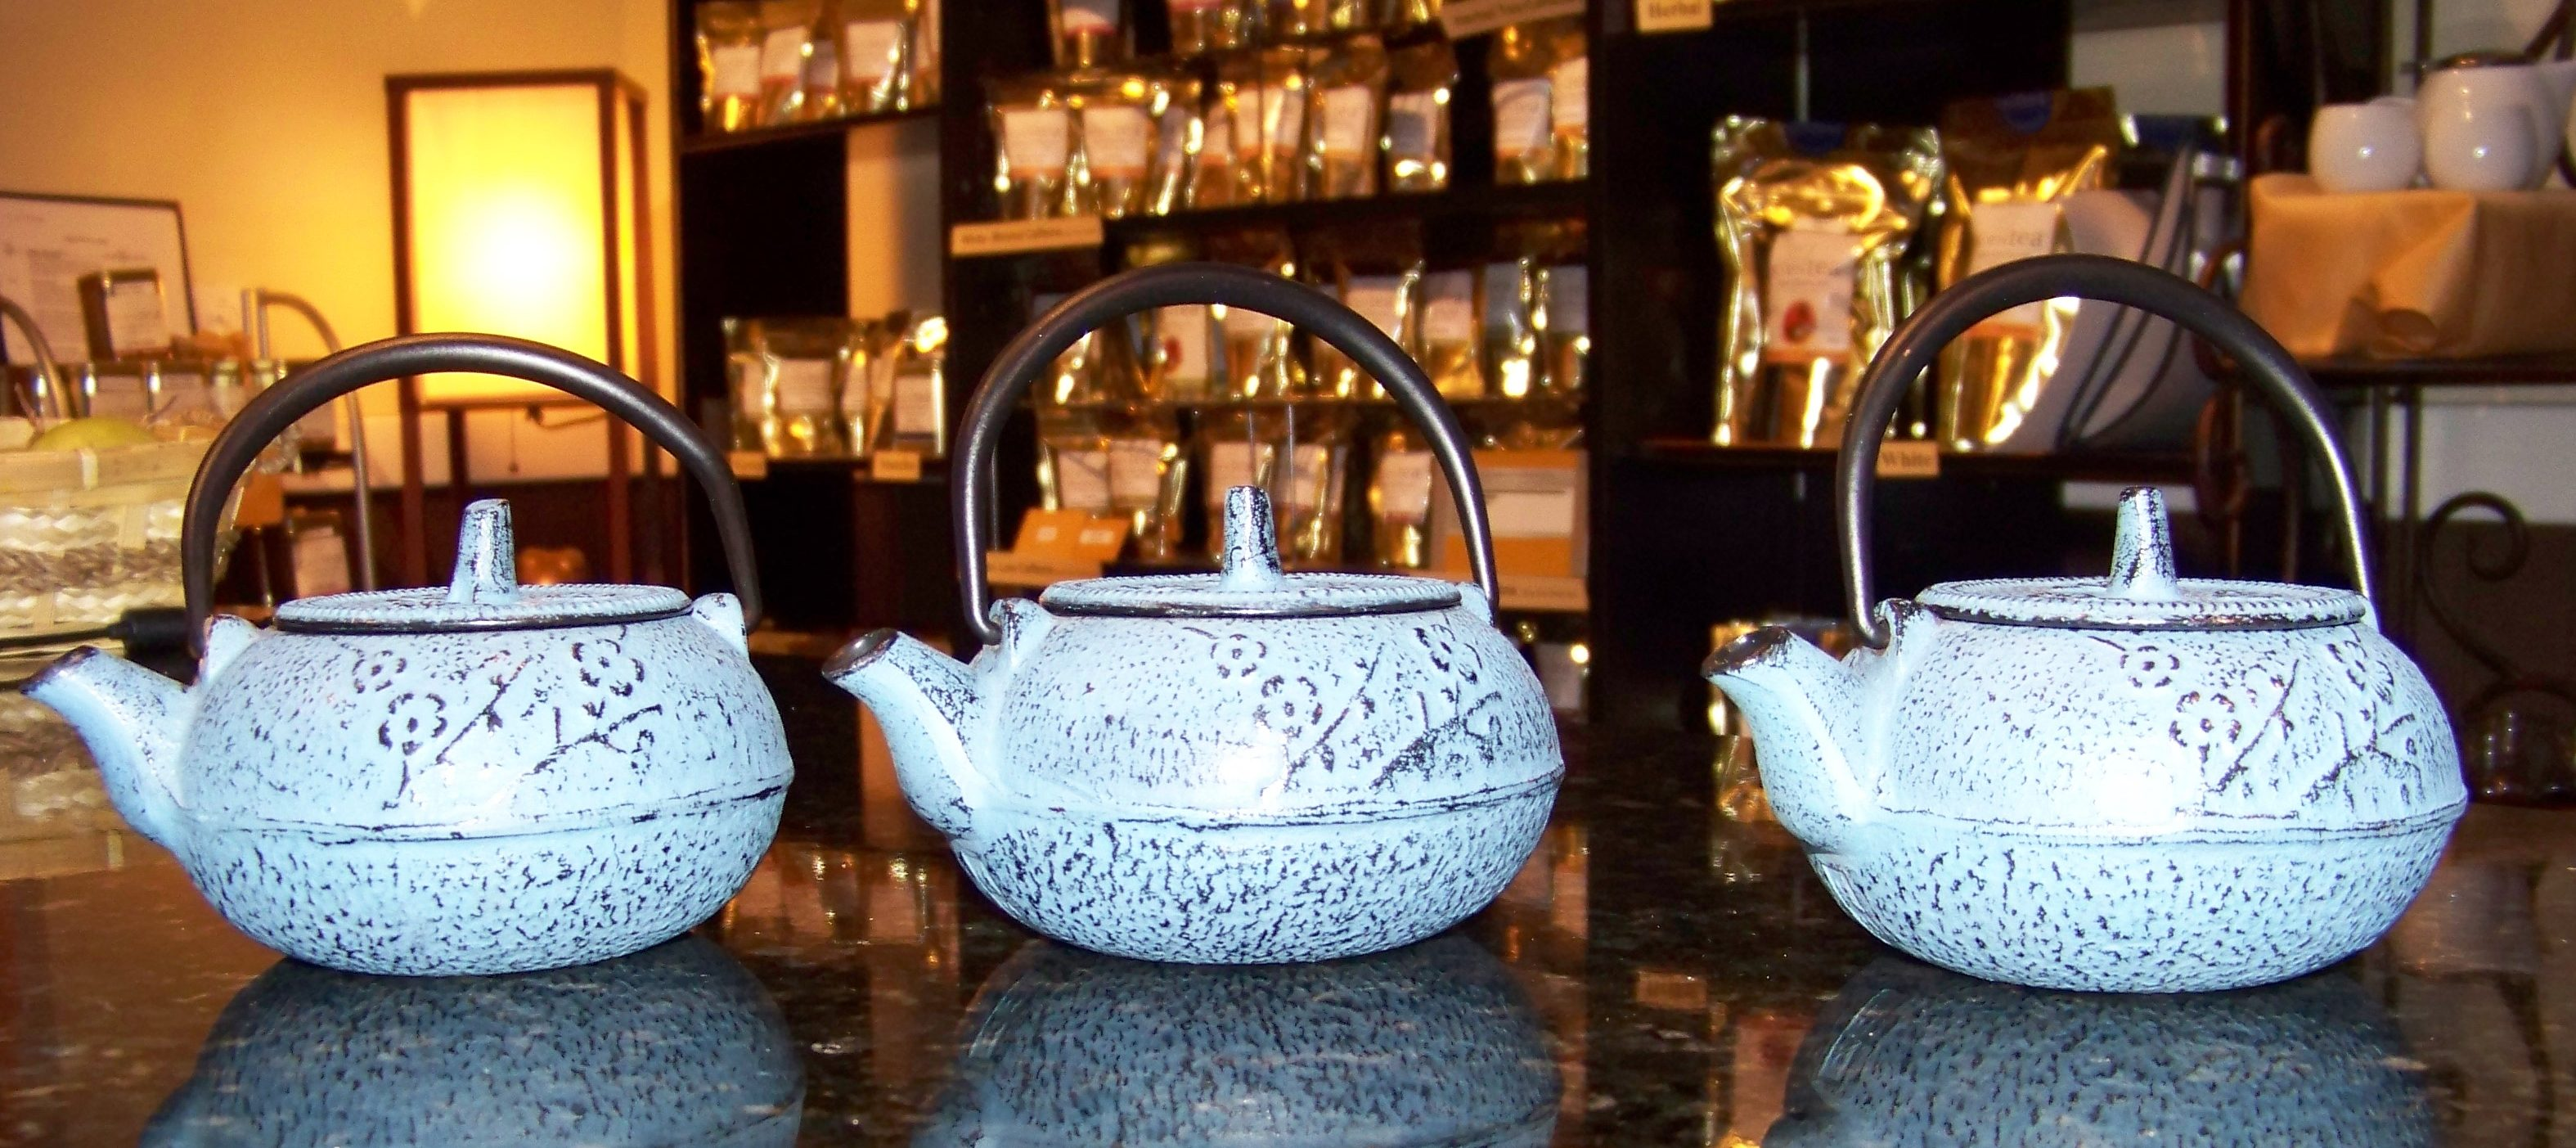 tea tasting, zentea tea tasting, blue cast iron tea pots. tea flights, pots of tea, Black tea tasting, oolong tea tasting, green tea tasting, white tea tasting, rooibos tea tasting, herbal tea tasting, wellness tea tastings, mate tea tasting,